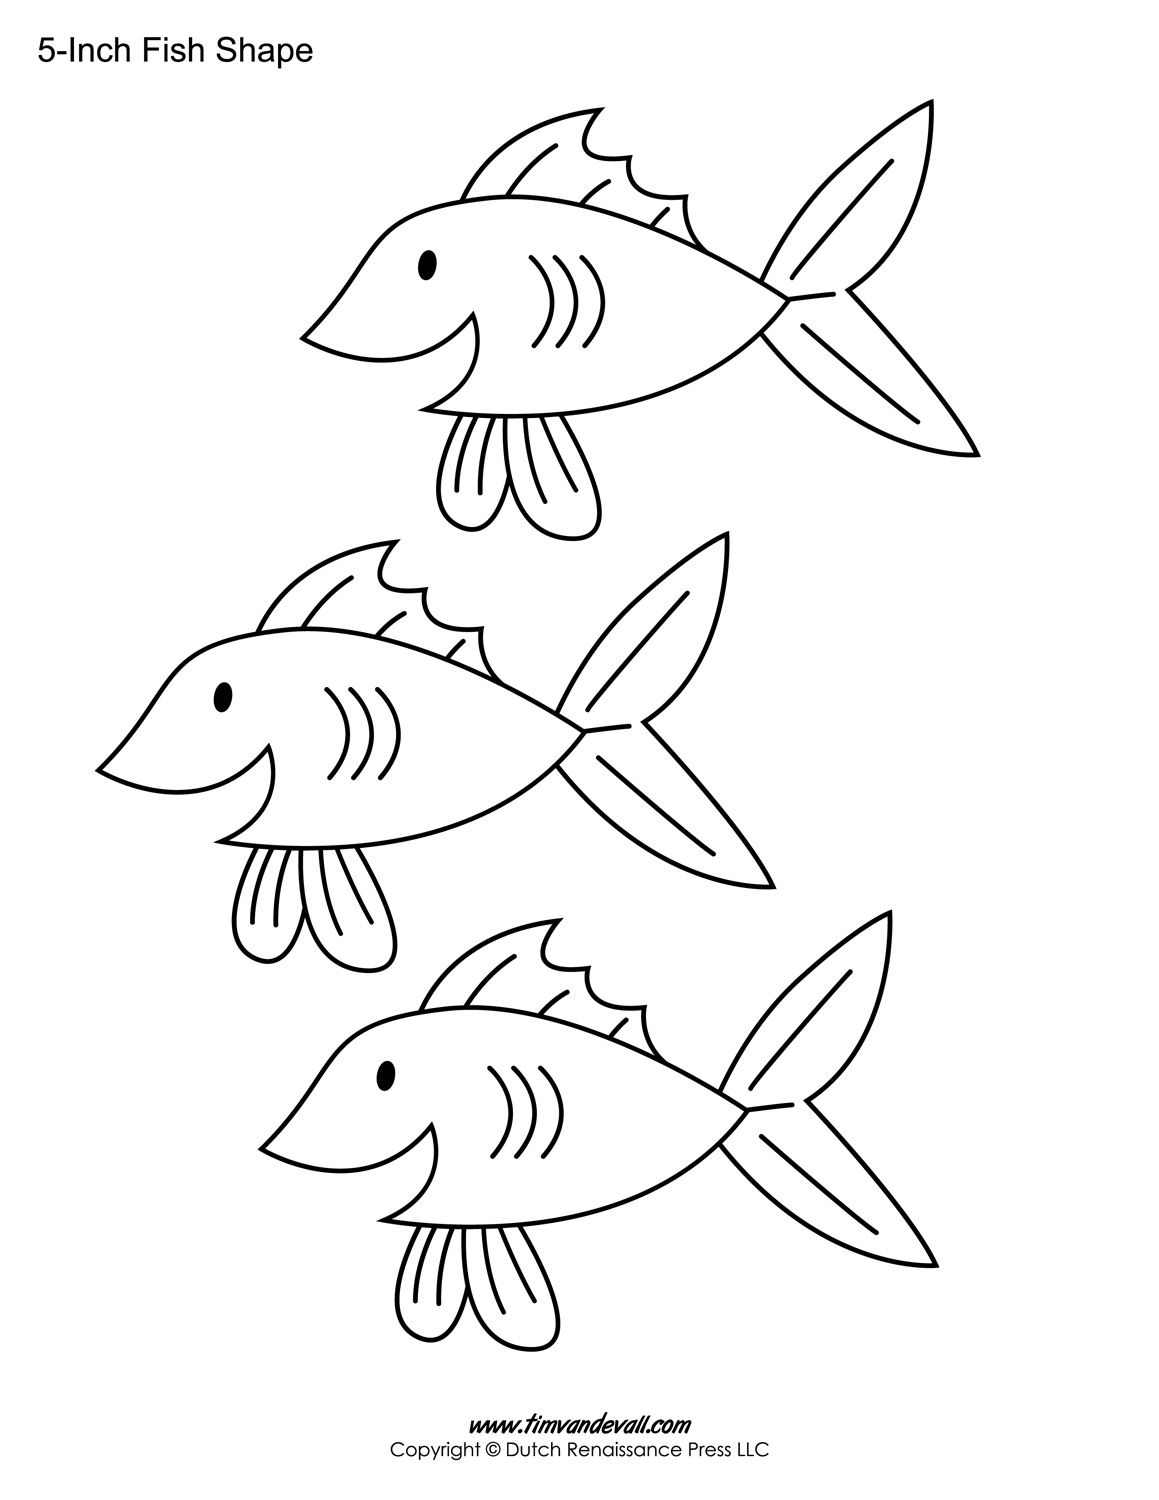 Printable Fish Cutouts